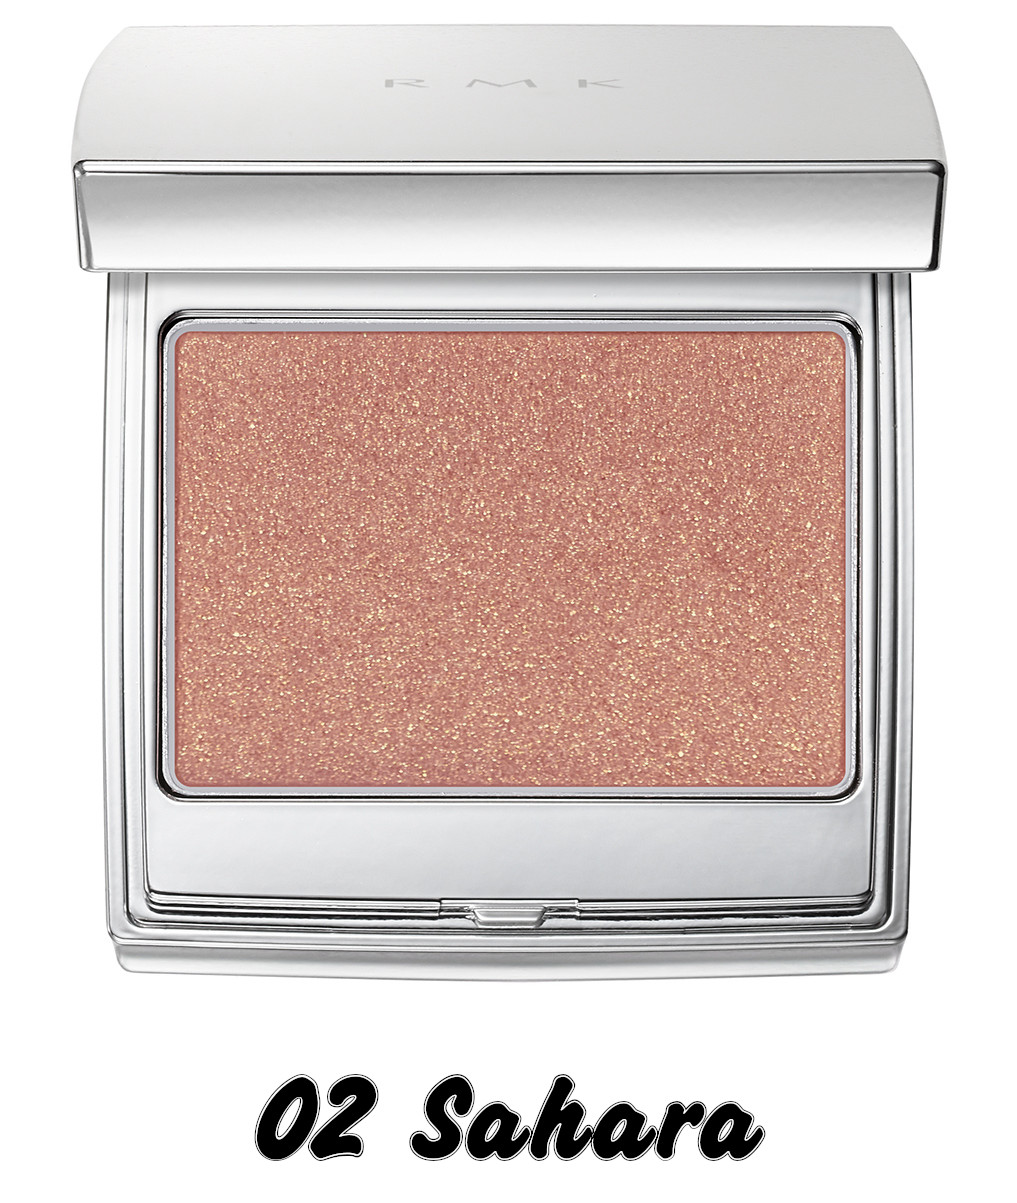 RMK The Now Now Summer 2021 Collection The Now Now Blush 02 Sahara